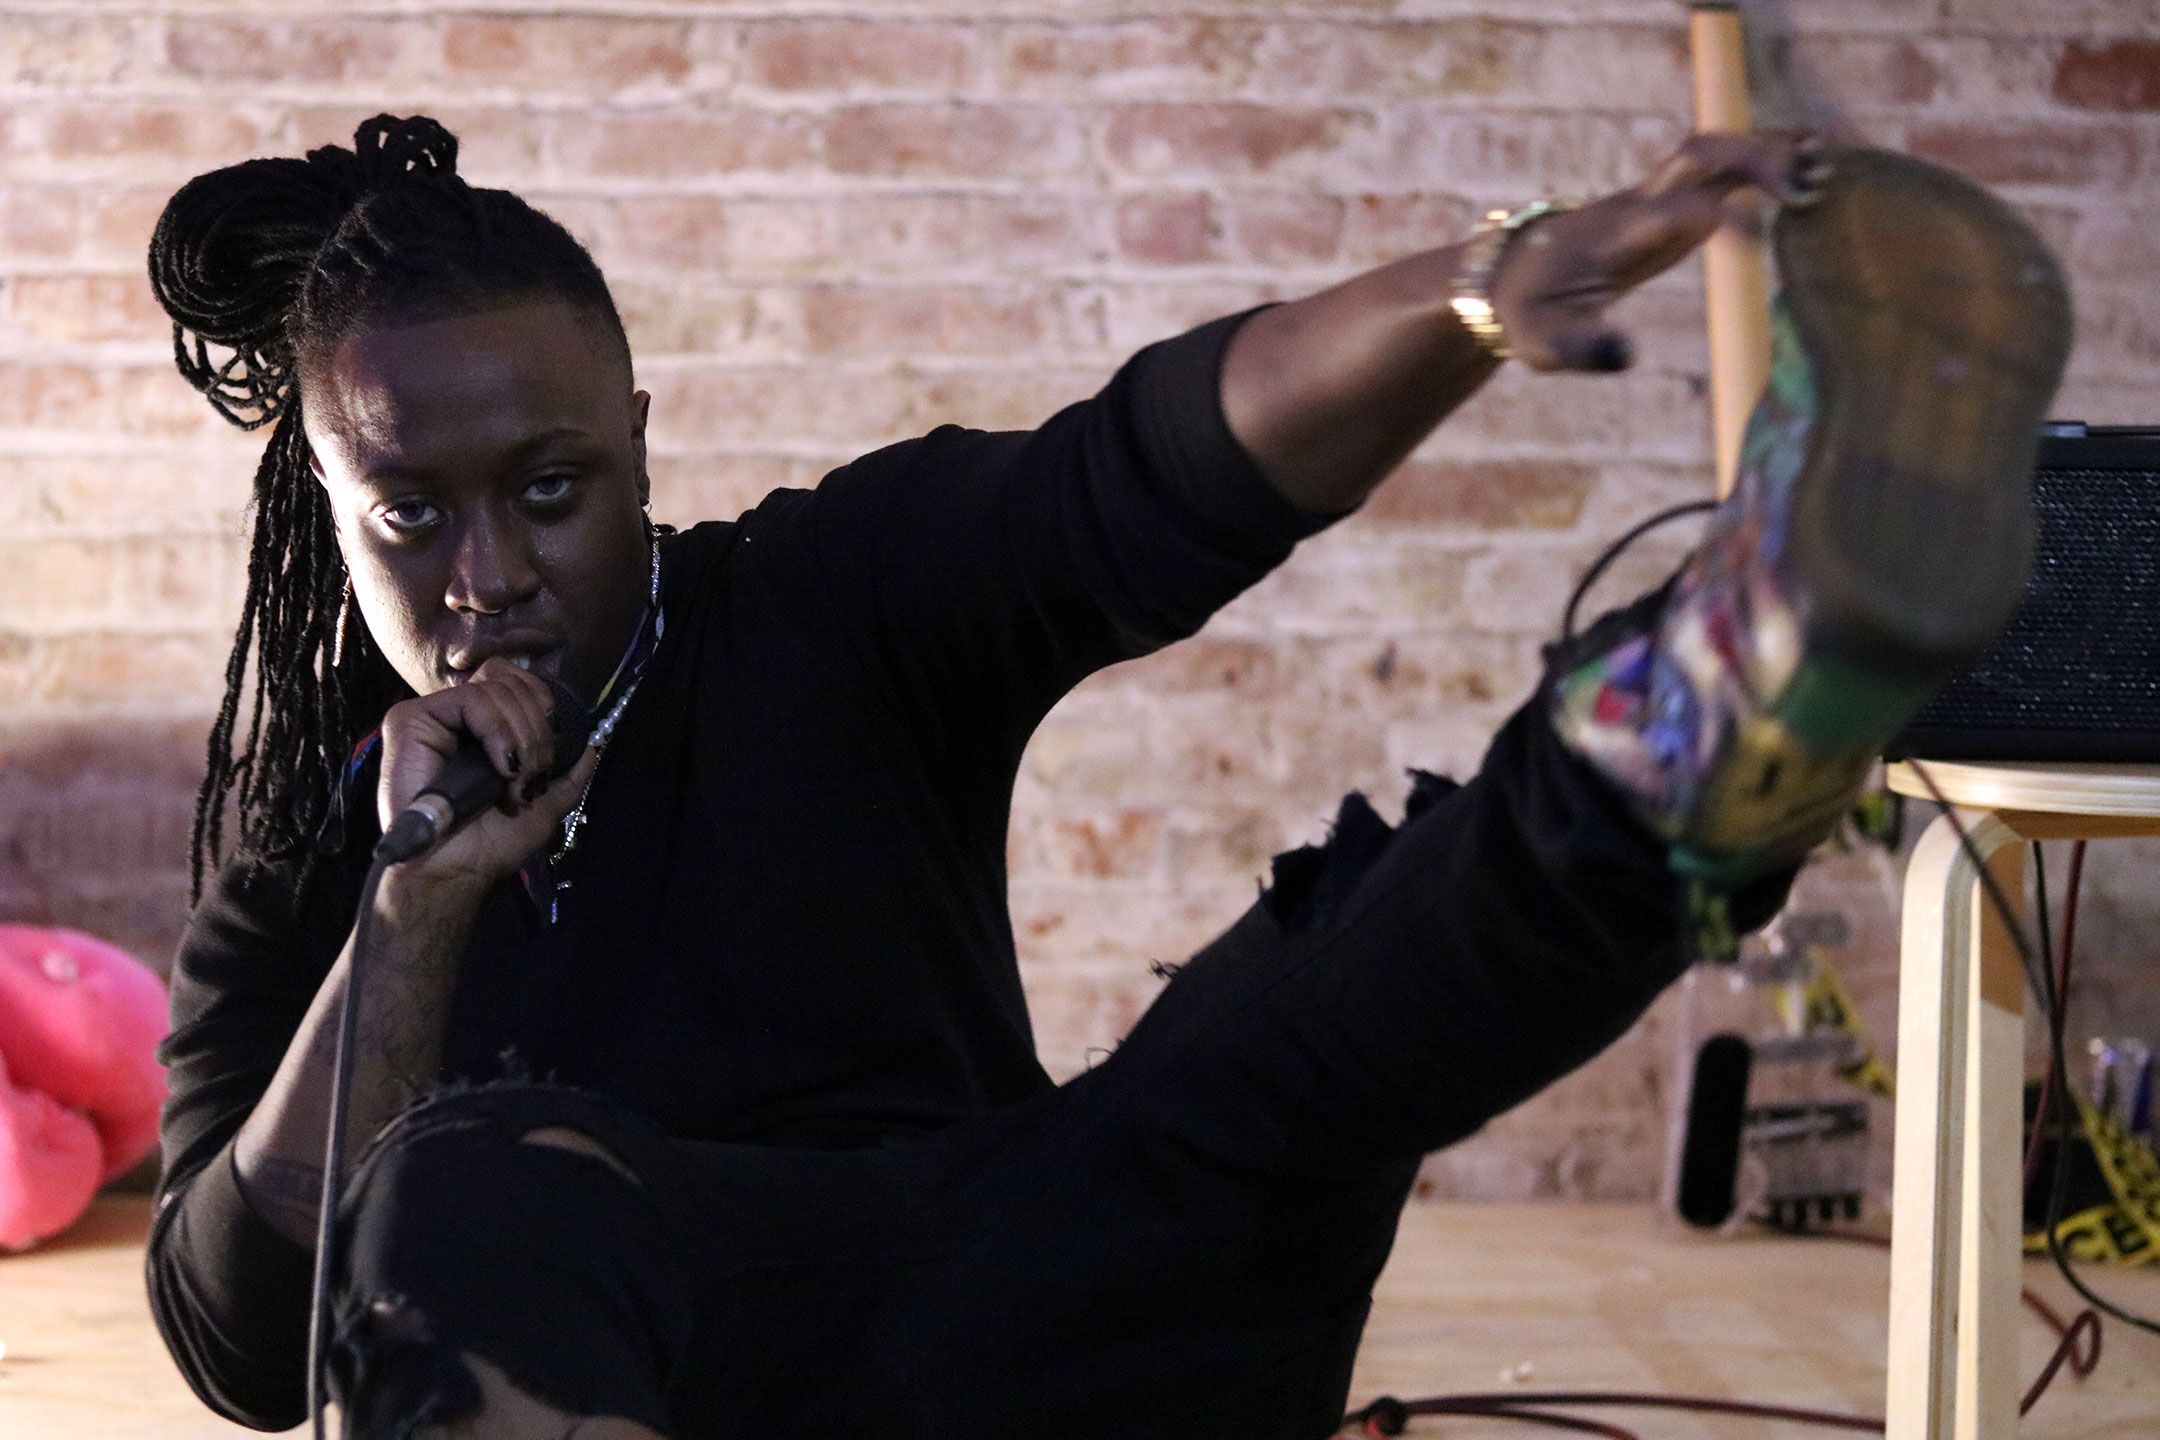 OTK 2 , a live art performance/salon curated by Brian Kenny and Gio Black Peter, American Medium gallery, NY 2018. Photo: Brian Kenny